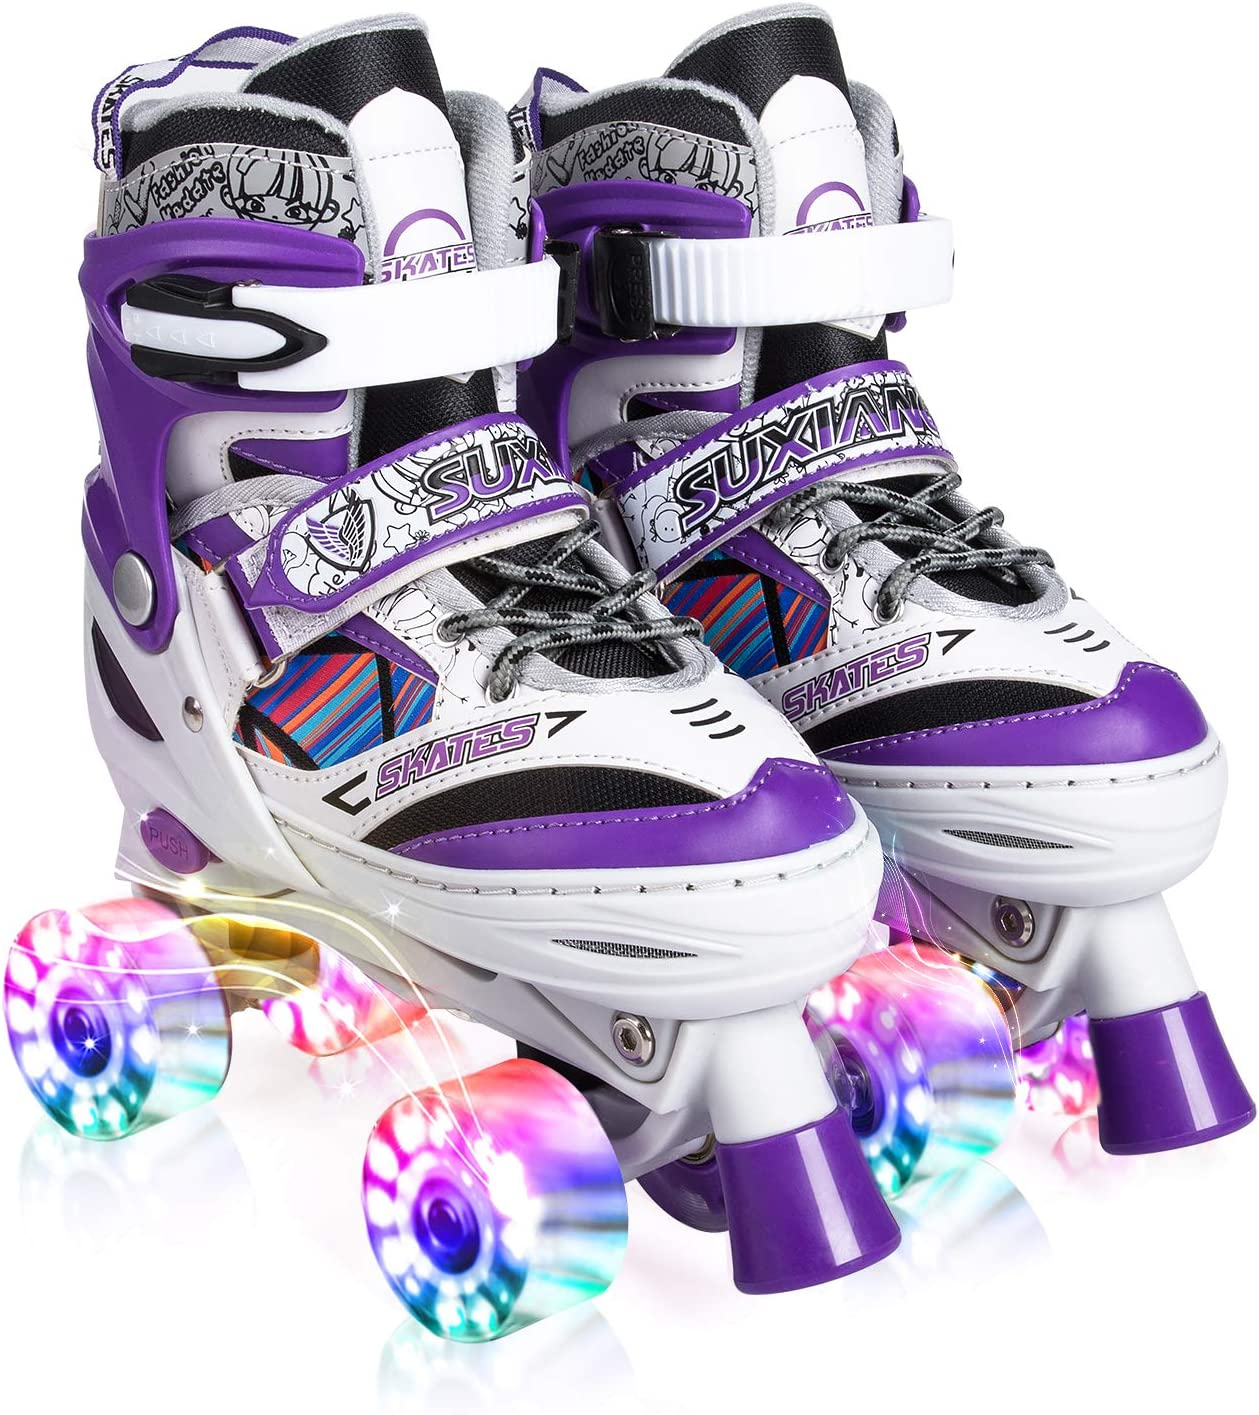 Amazon Com Kuxuan Doodle Design Roller Skates Adjustable For Kids With All Wheels Light Up Fun Illuminating For Girls And Ladies Sports Outdoors